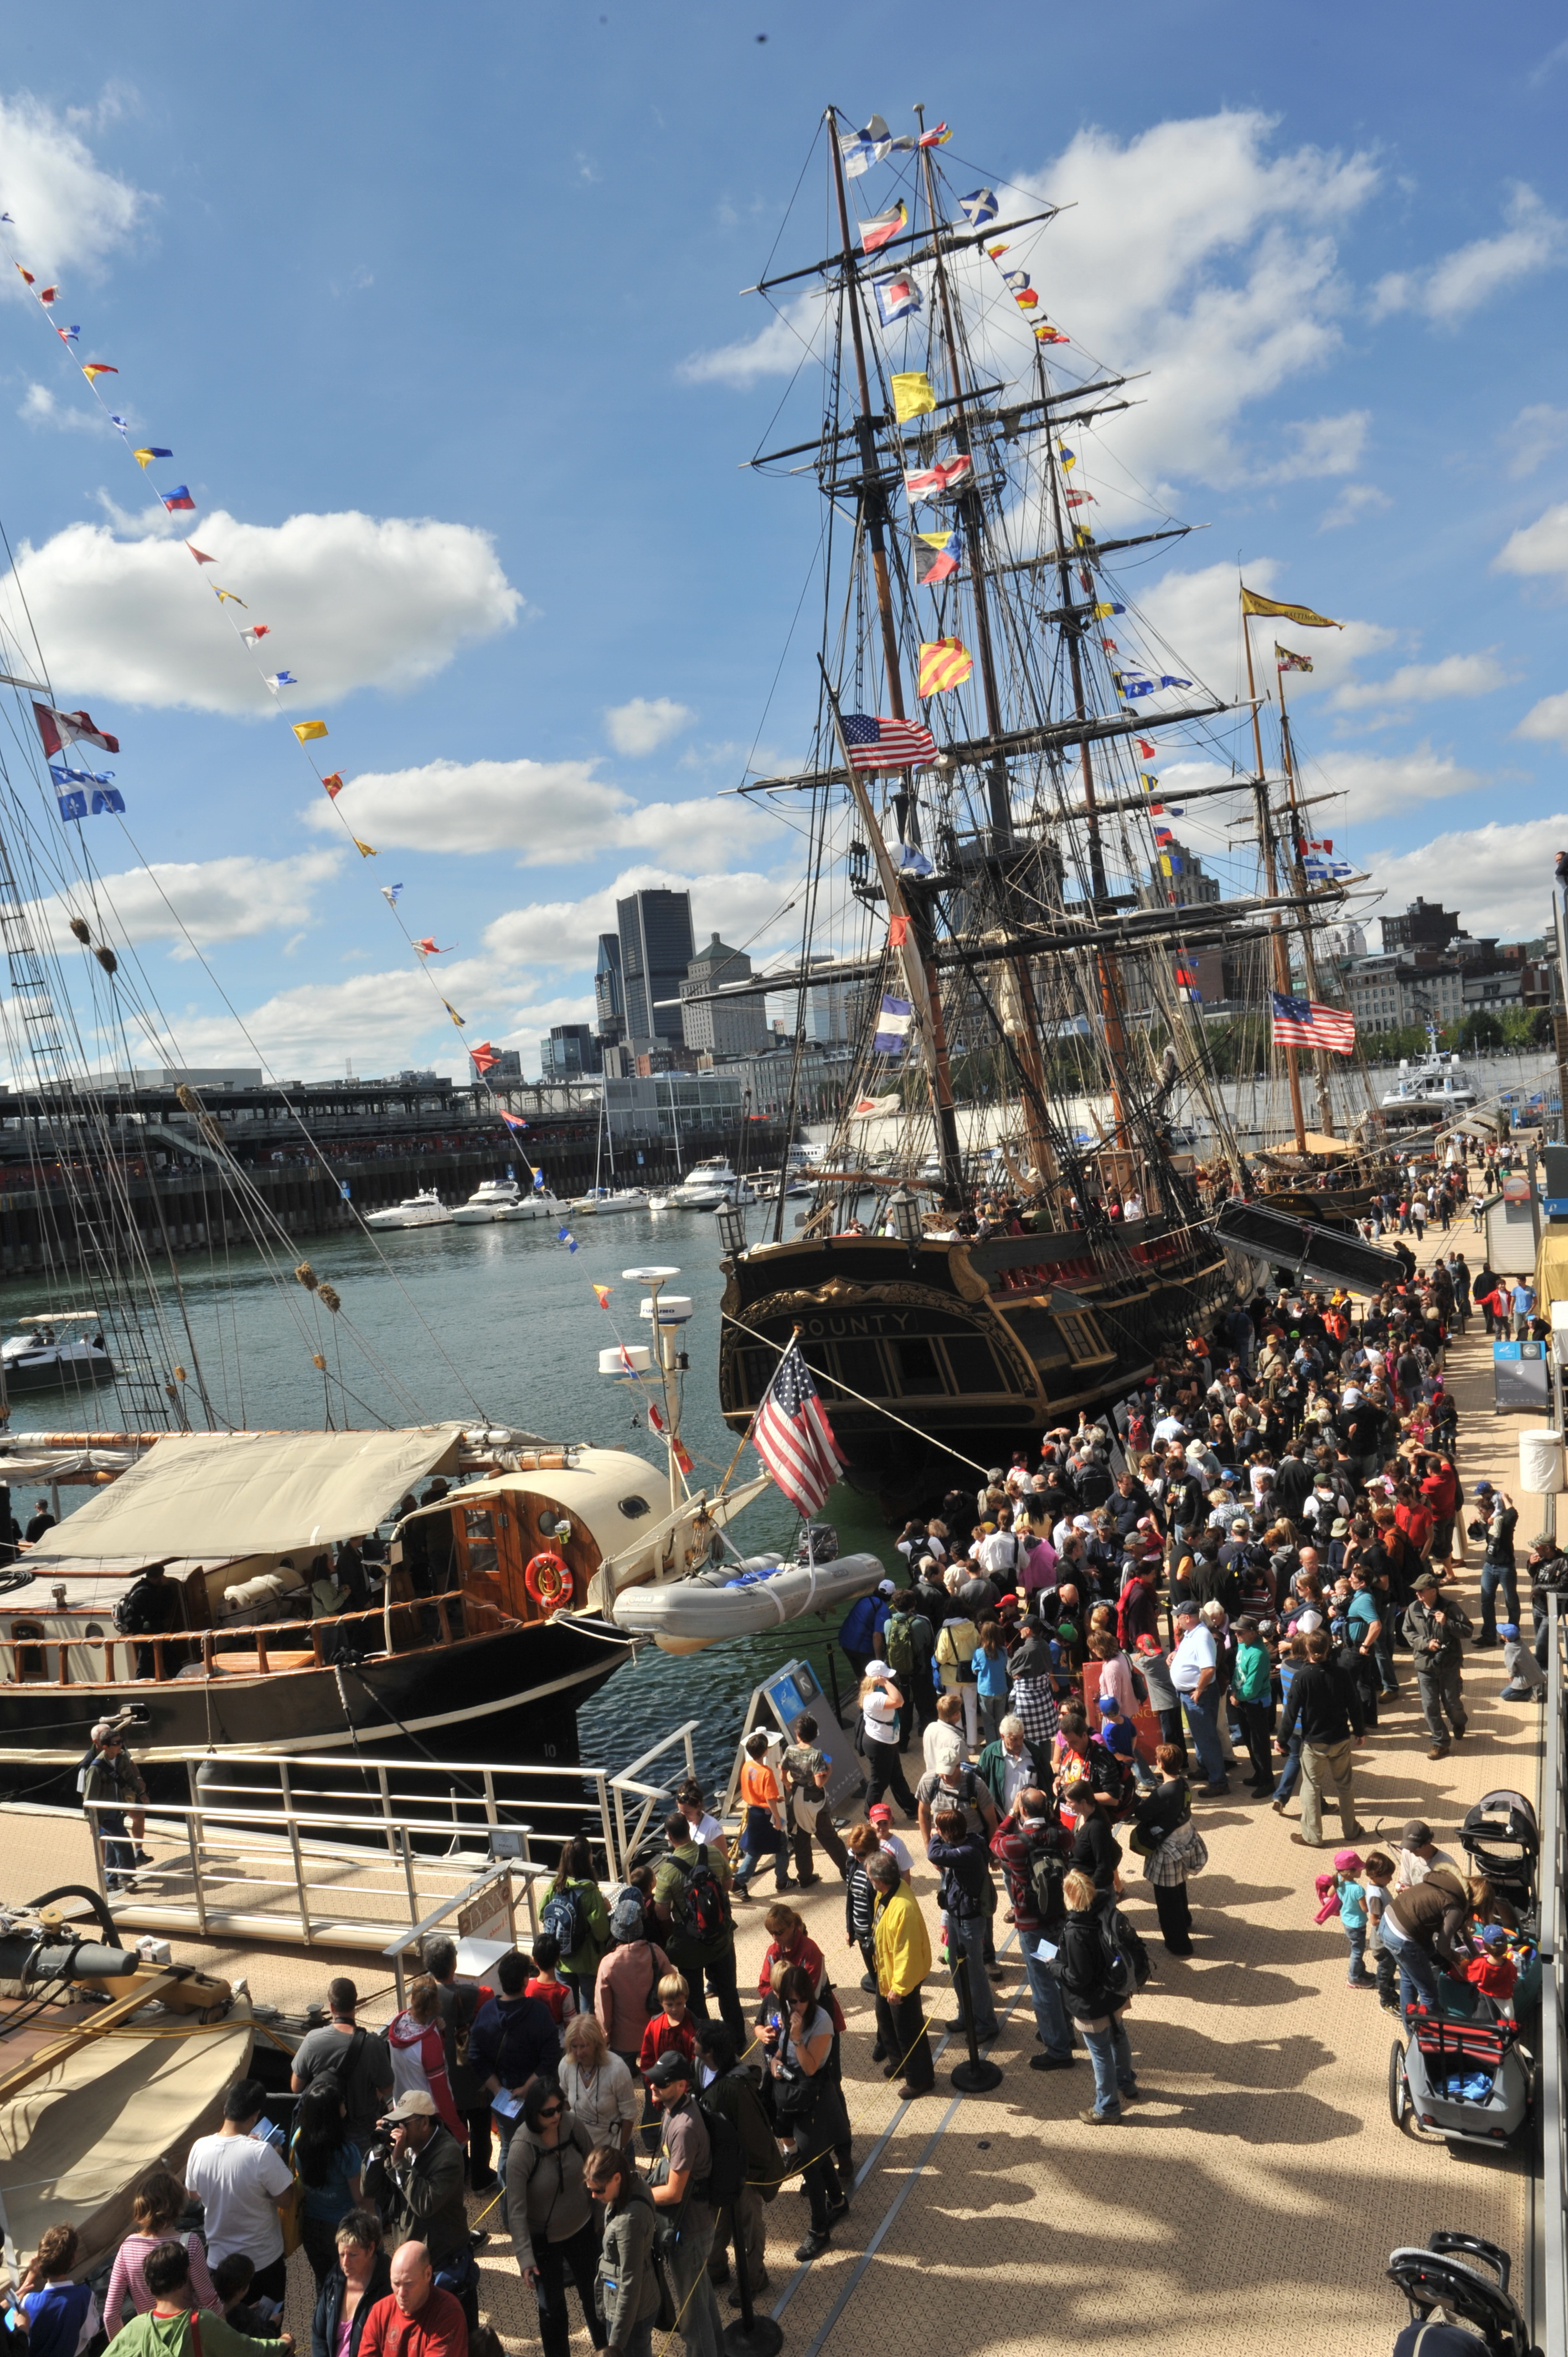 The Old Port welcomes six million visitors annually